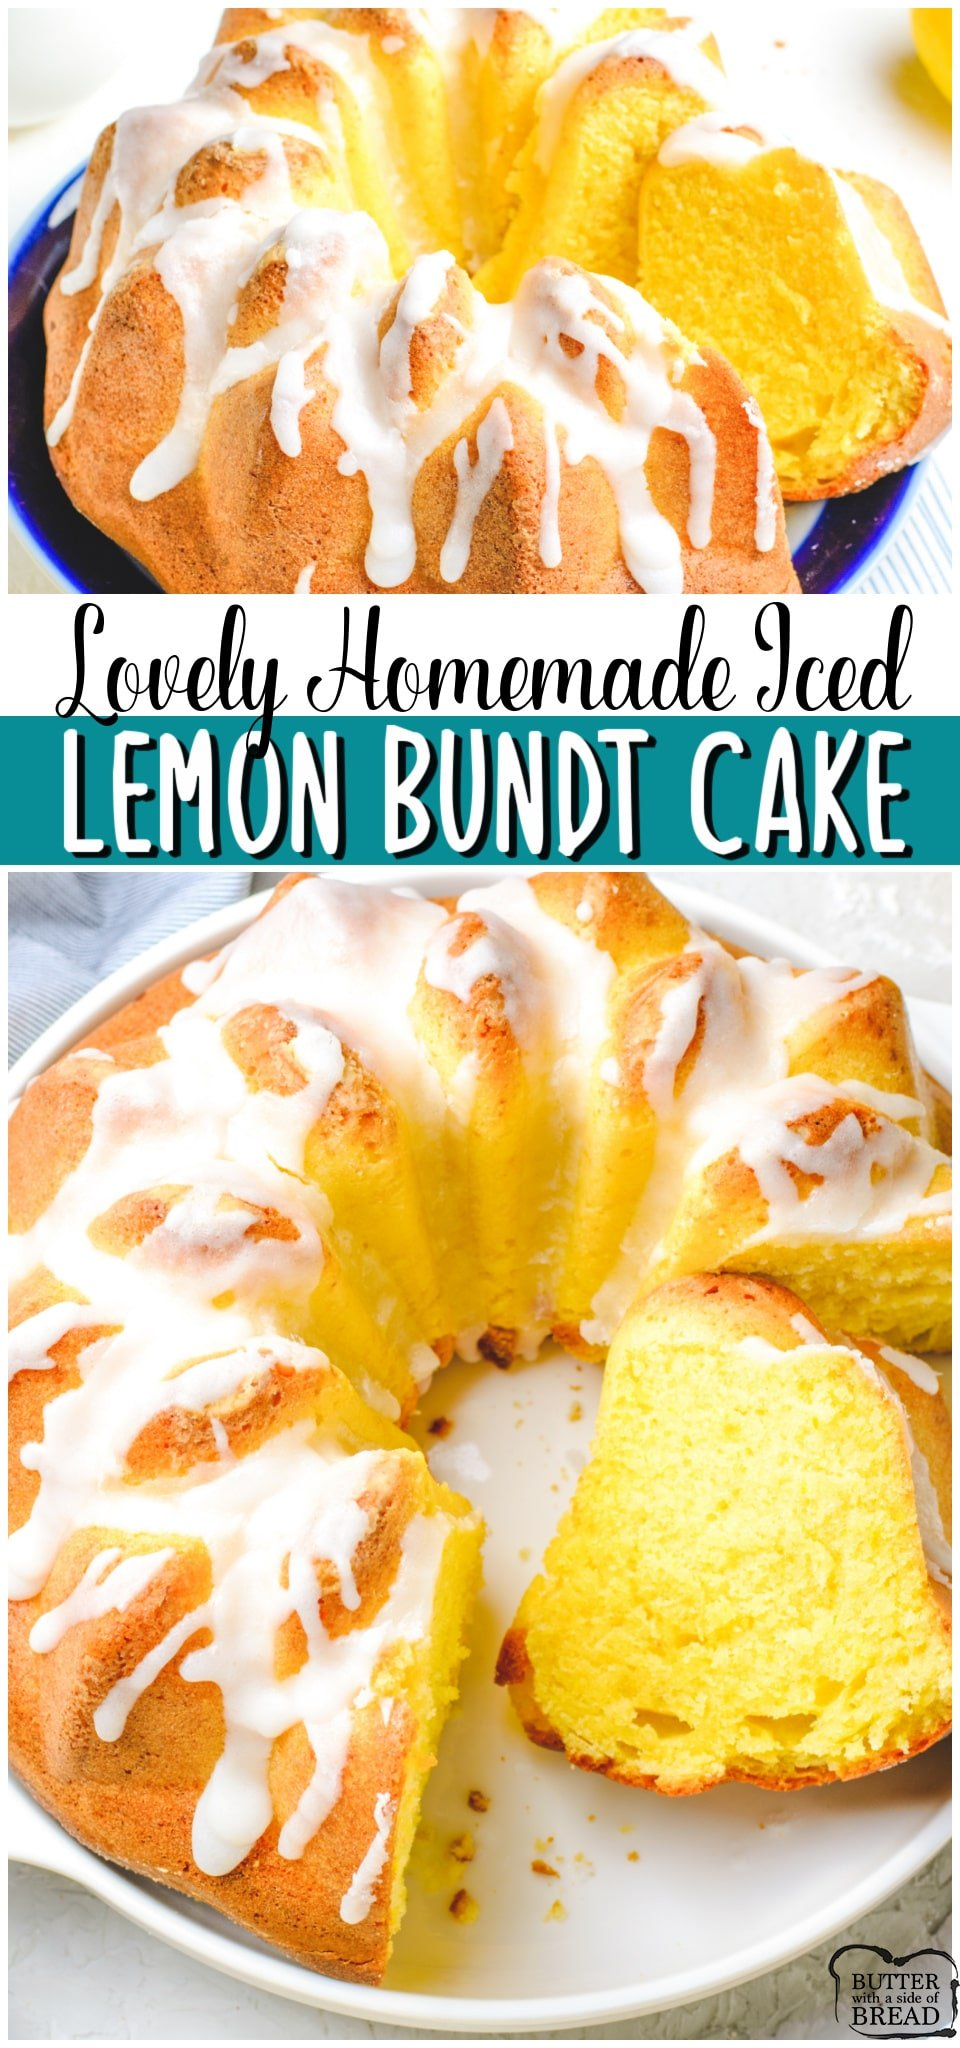 Iced lemon bundt cake made with classic ingredients with bright, fresh lemon flavor! Vanilla cake recipe with lemon juice and lemon zest for a delicious Springtime dessert. #cake #lemon #bundt #homemade #cakerecipe #baking #easyrecipe from BUTTER WITH A SIDE OF BREAD